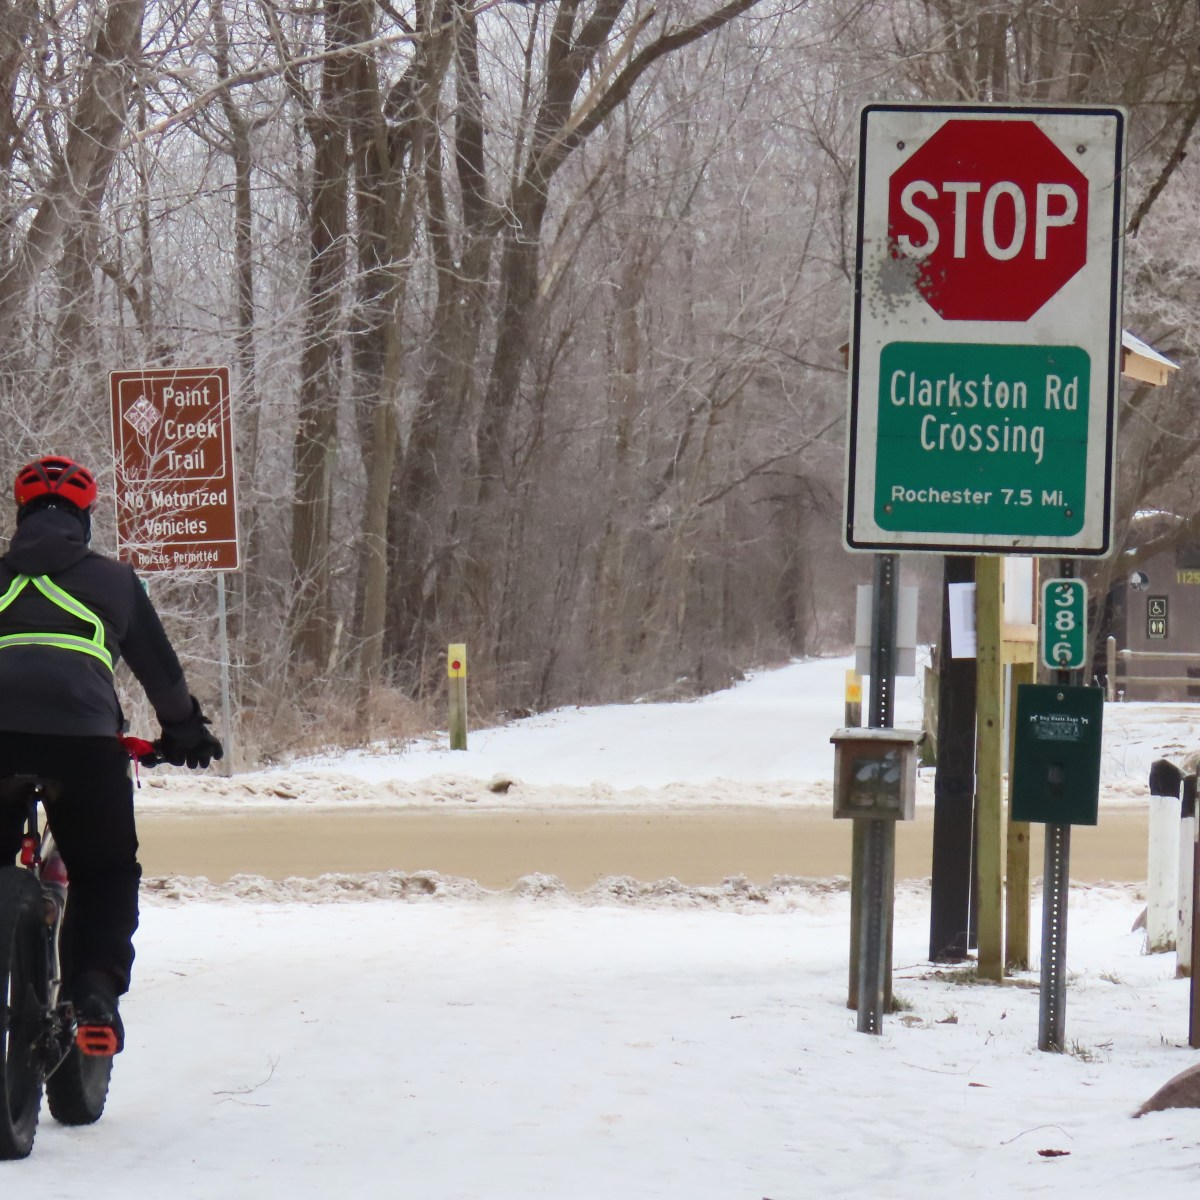 A person rides a fat tire bike on a snow-covered trail that intersects with a dirt road